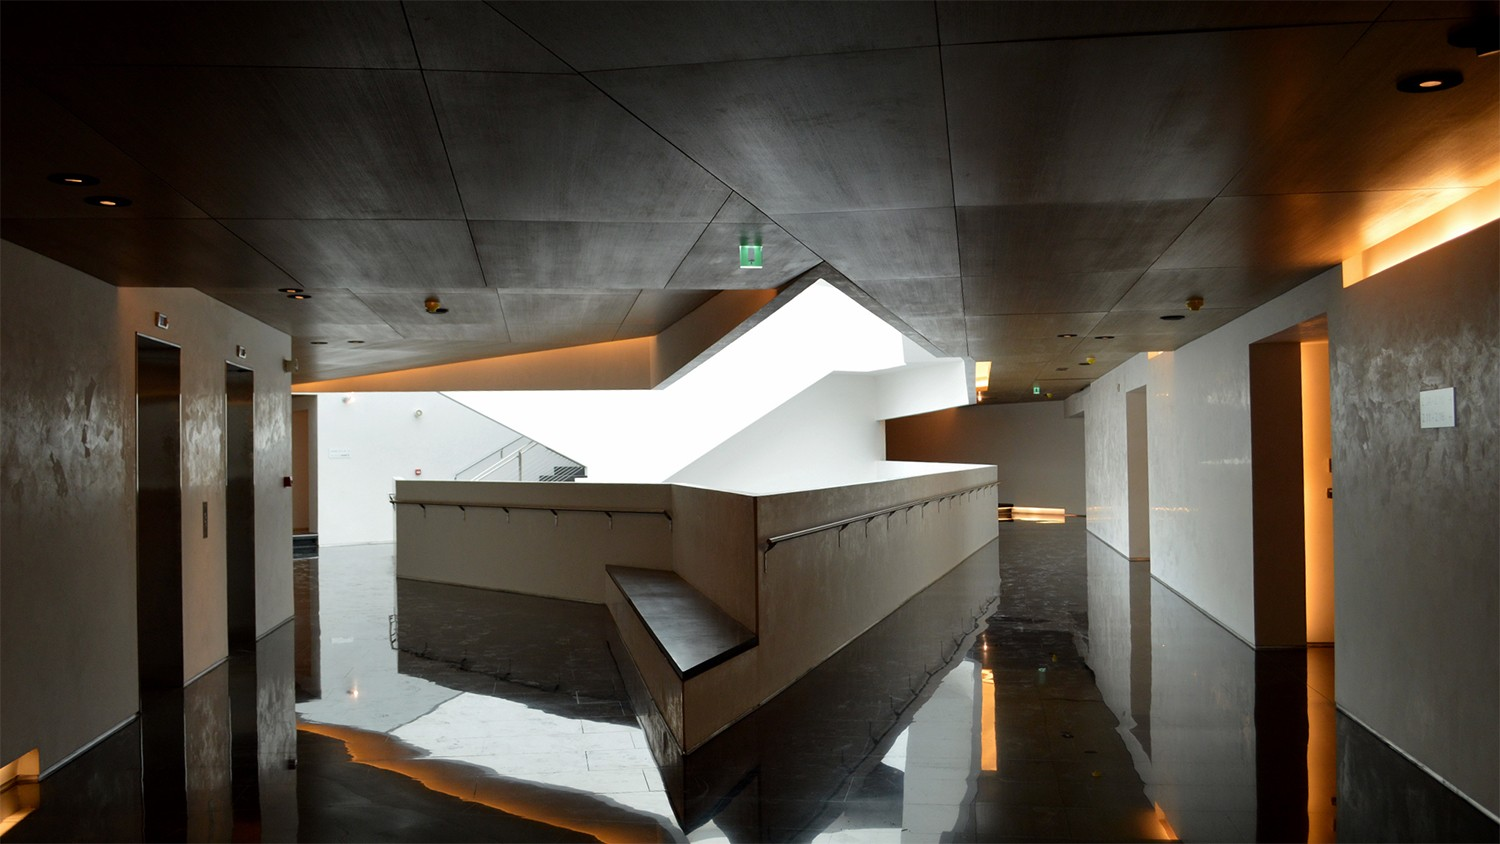 https://s3.us-east-2.amazonaws.com/steven-holl/uploads/projects/project-images/StevenHollArchitects_Beirut_London2013-06-24_19_WH.jpg